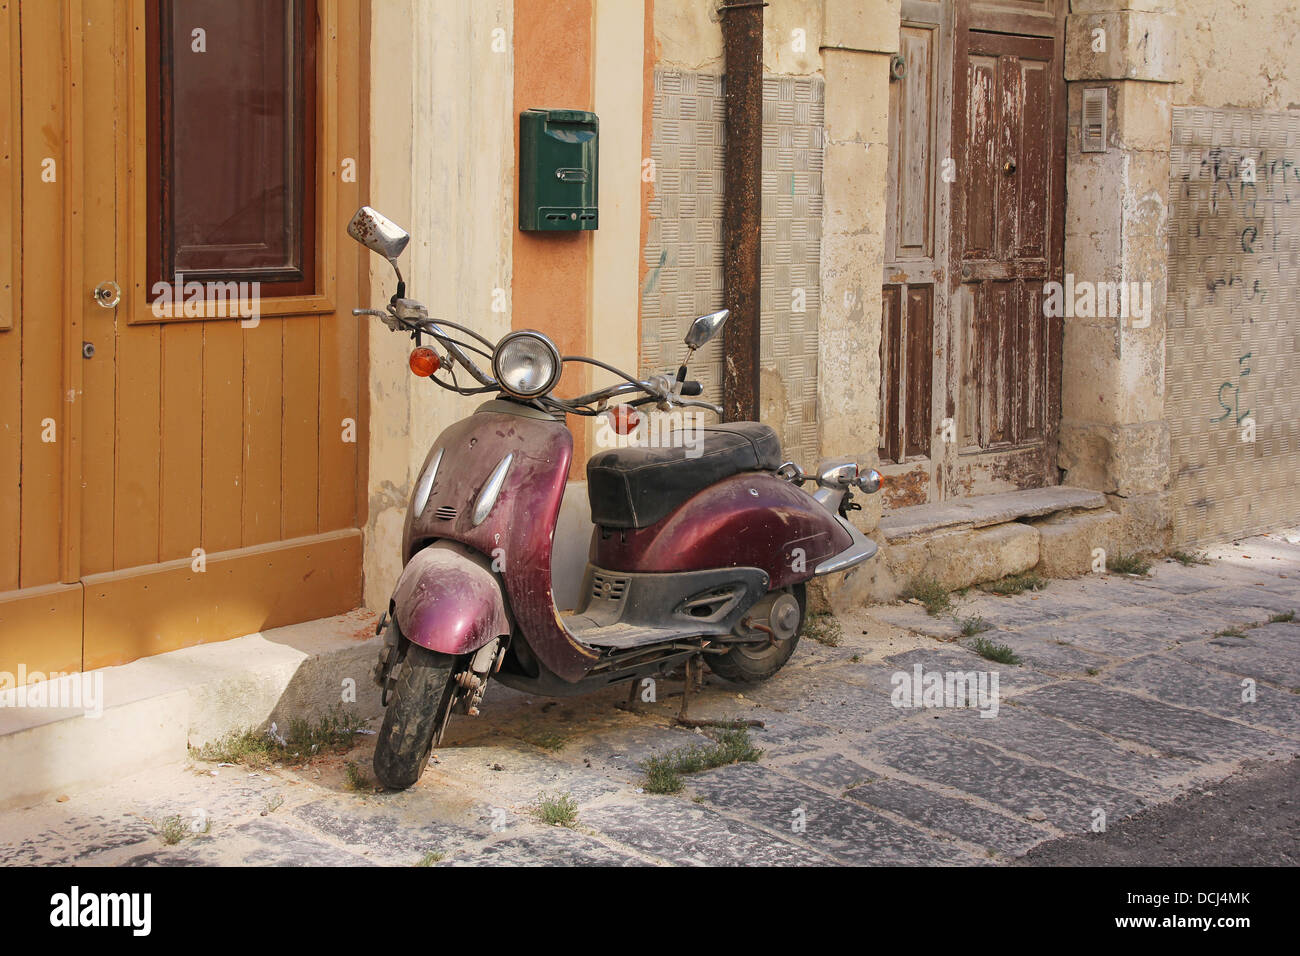 Old rusty purple scooter oldtimer motorcycle left in an abandoned street - Stock Image